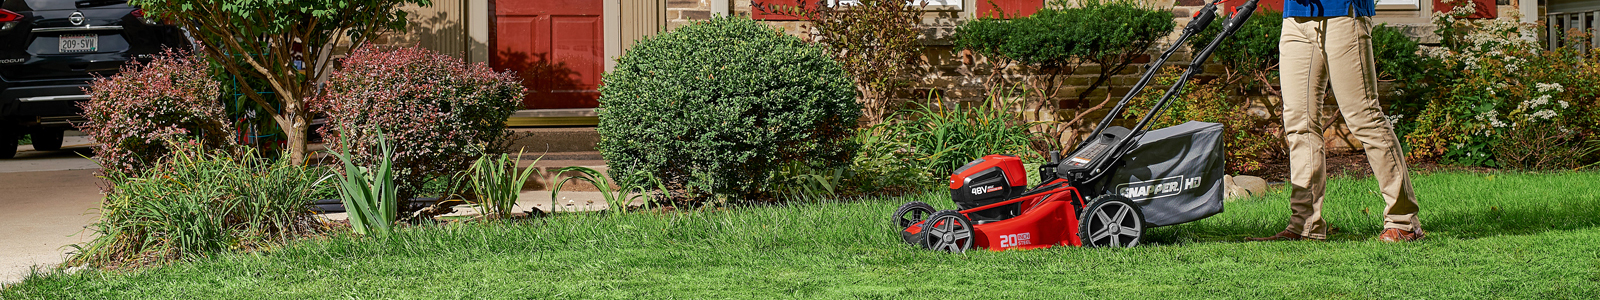 Snapper HD 48V Lawn Mowers